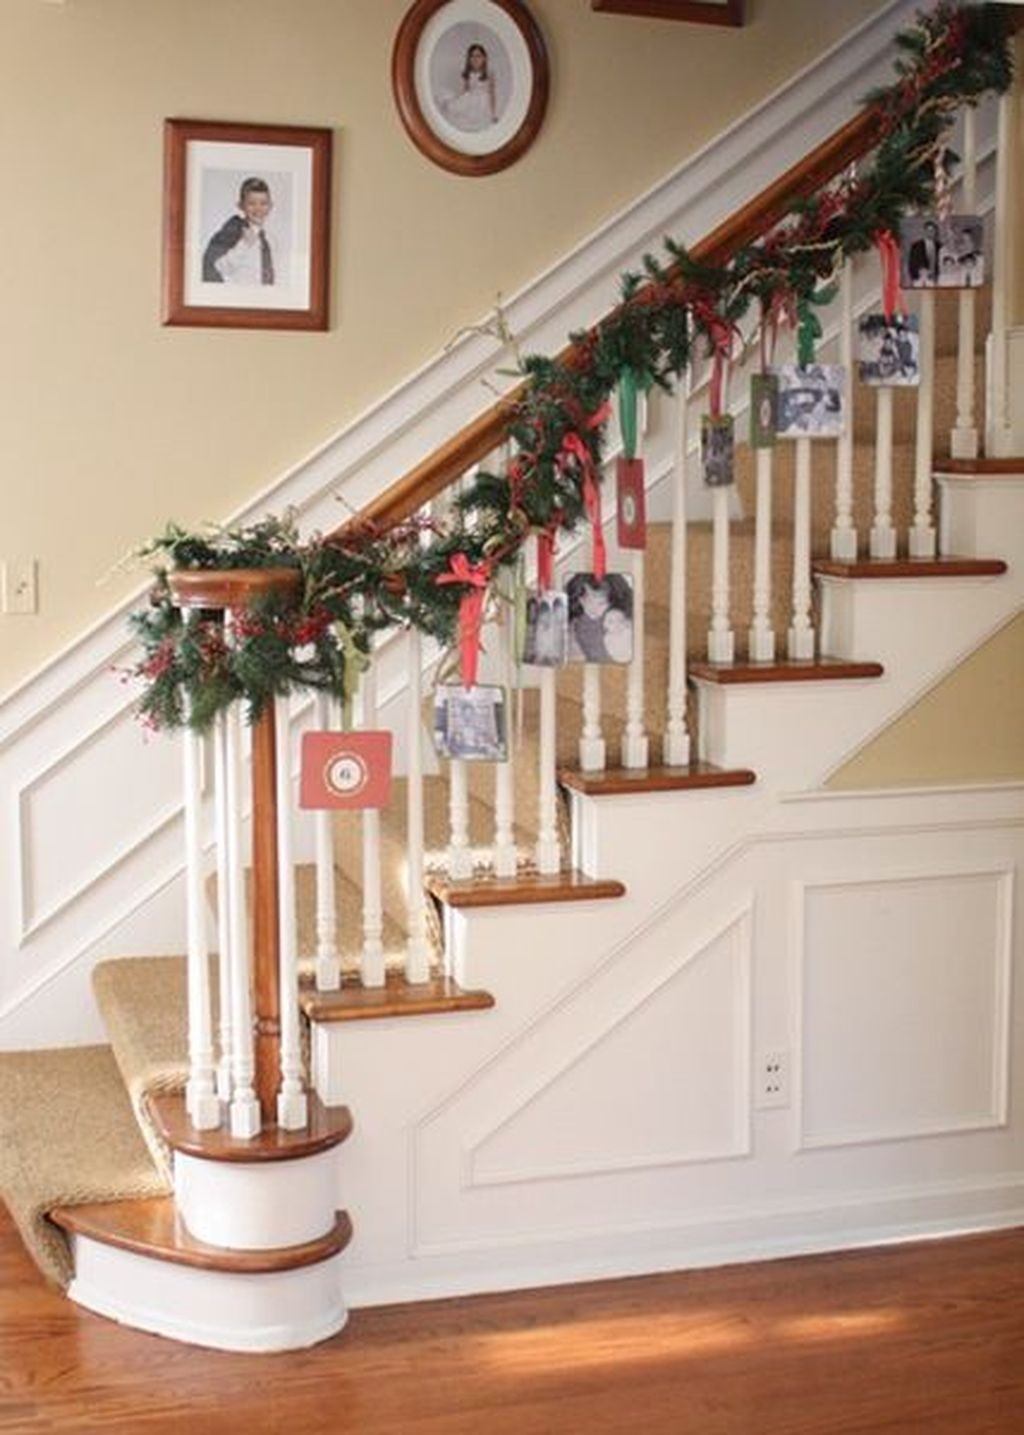 Charming Winter Staircase Design Ideas With Banister Ornaments To Try Asap 05